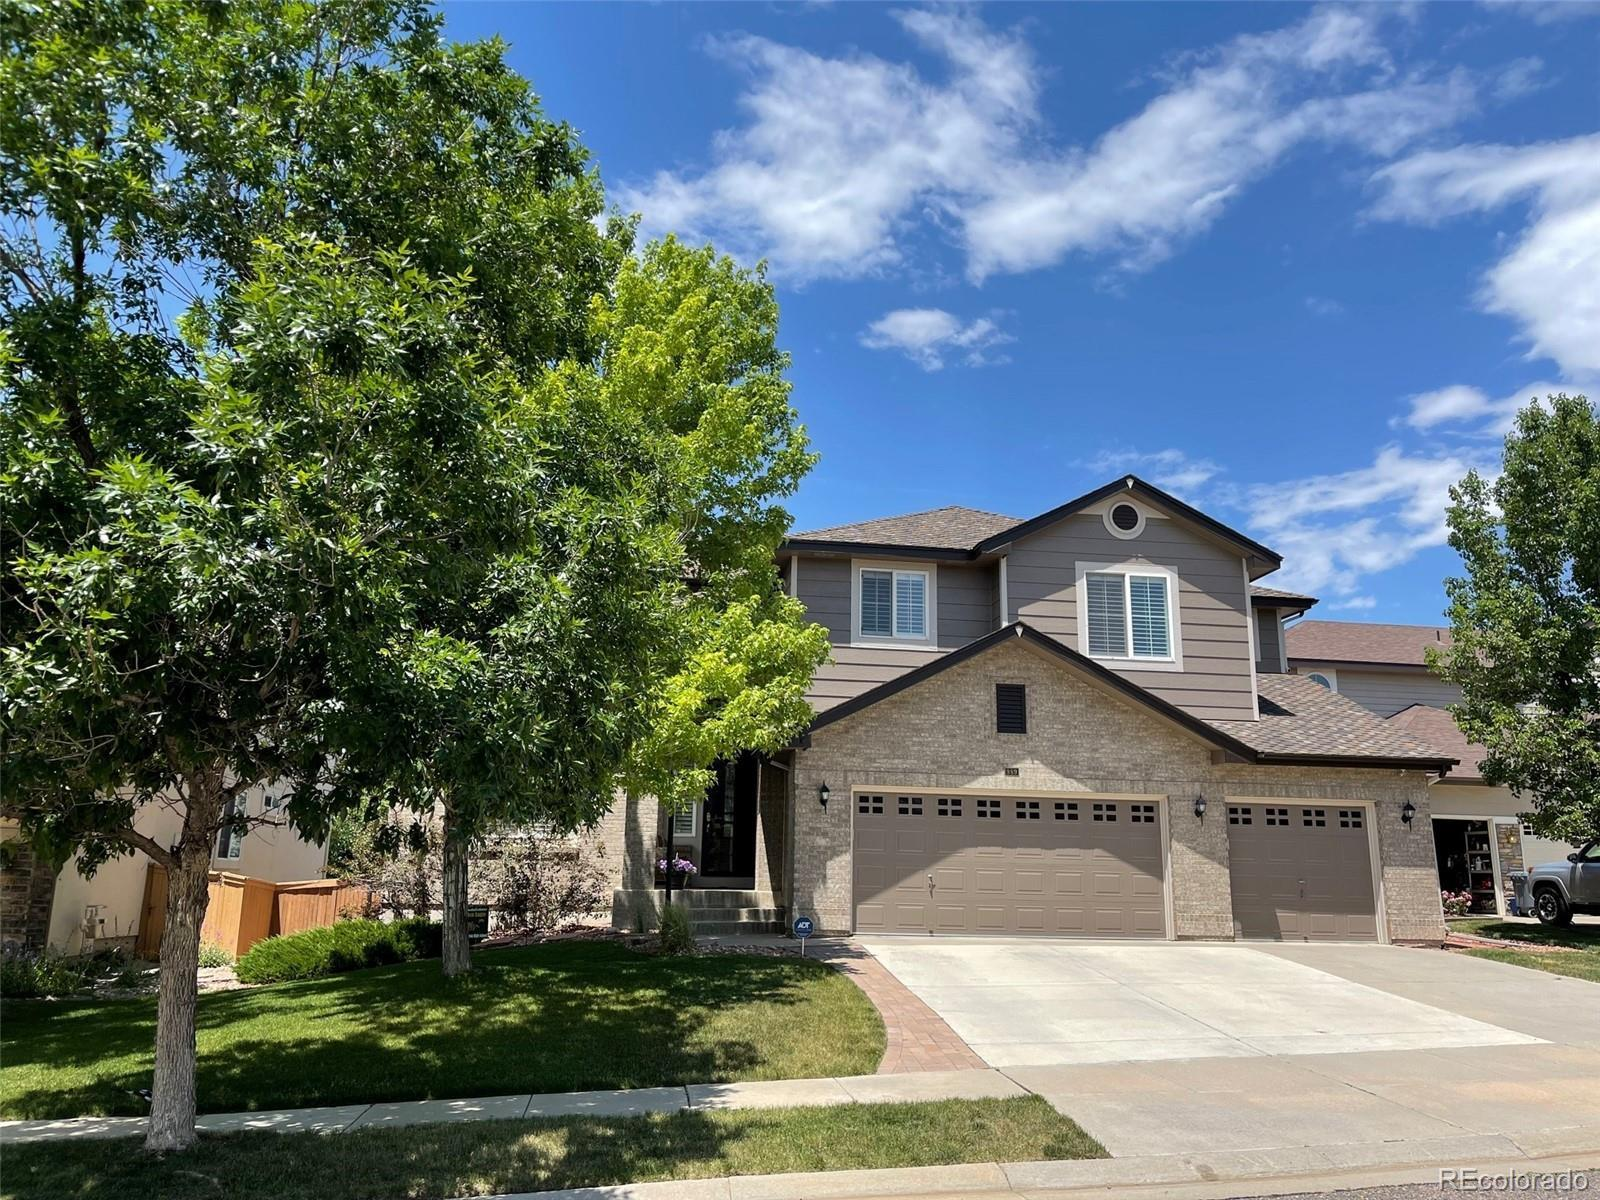 989 Graland Place, Highlands Ranch, CO 80126 - #: 6327316